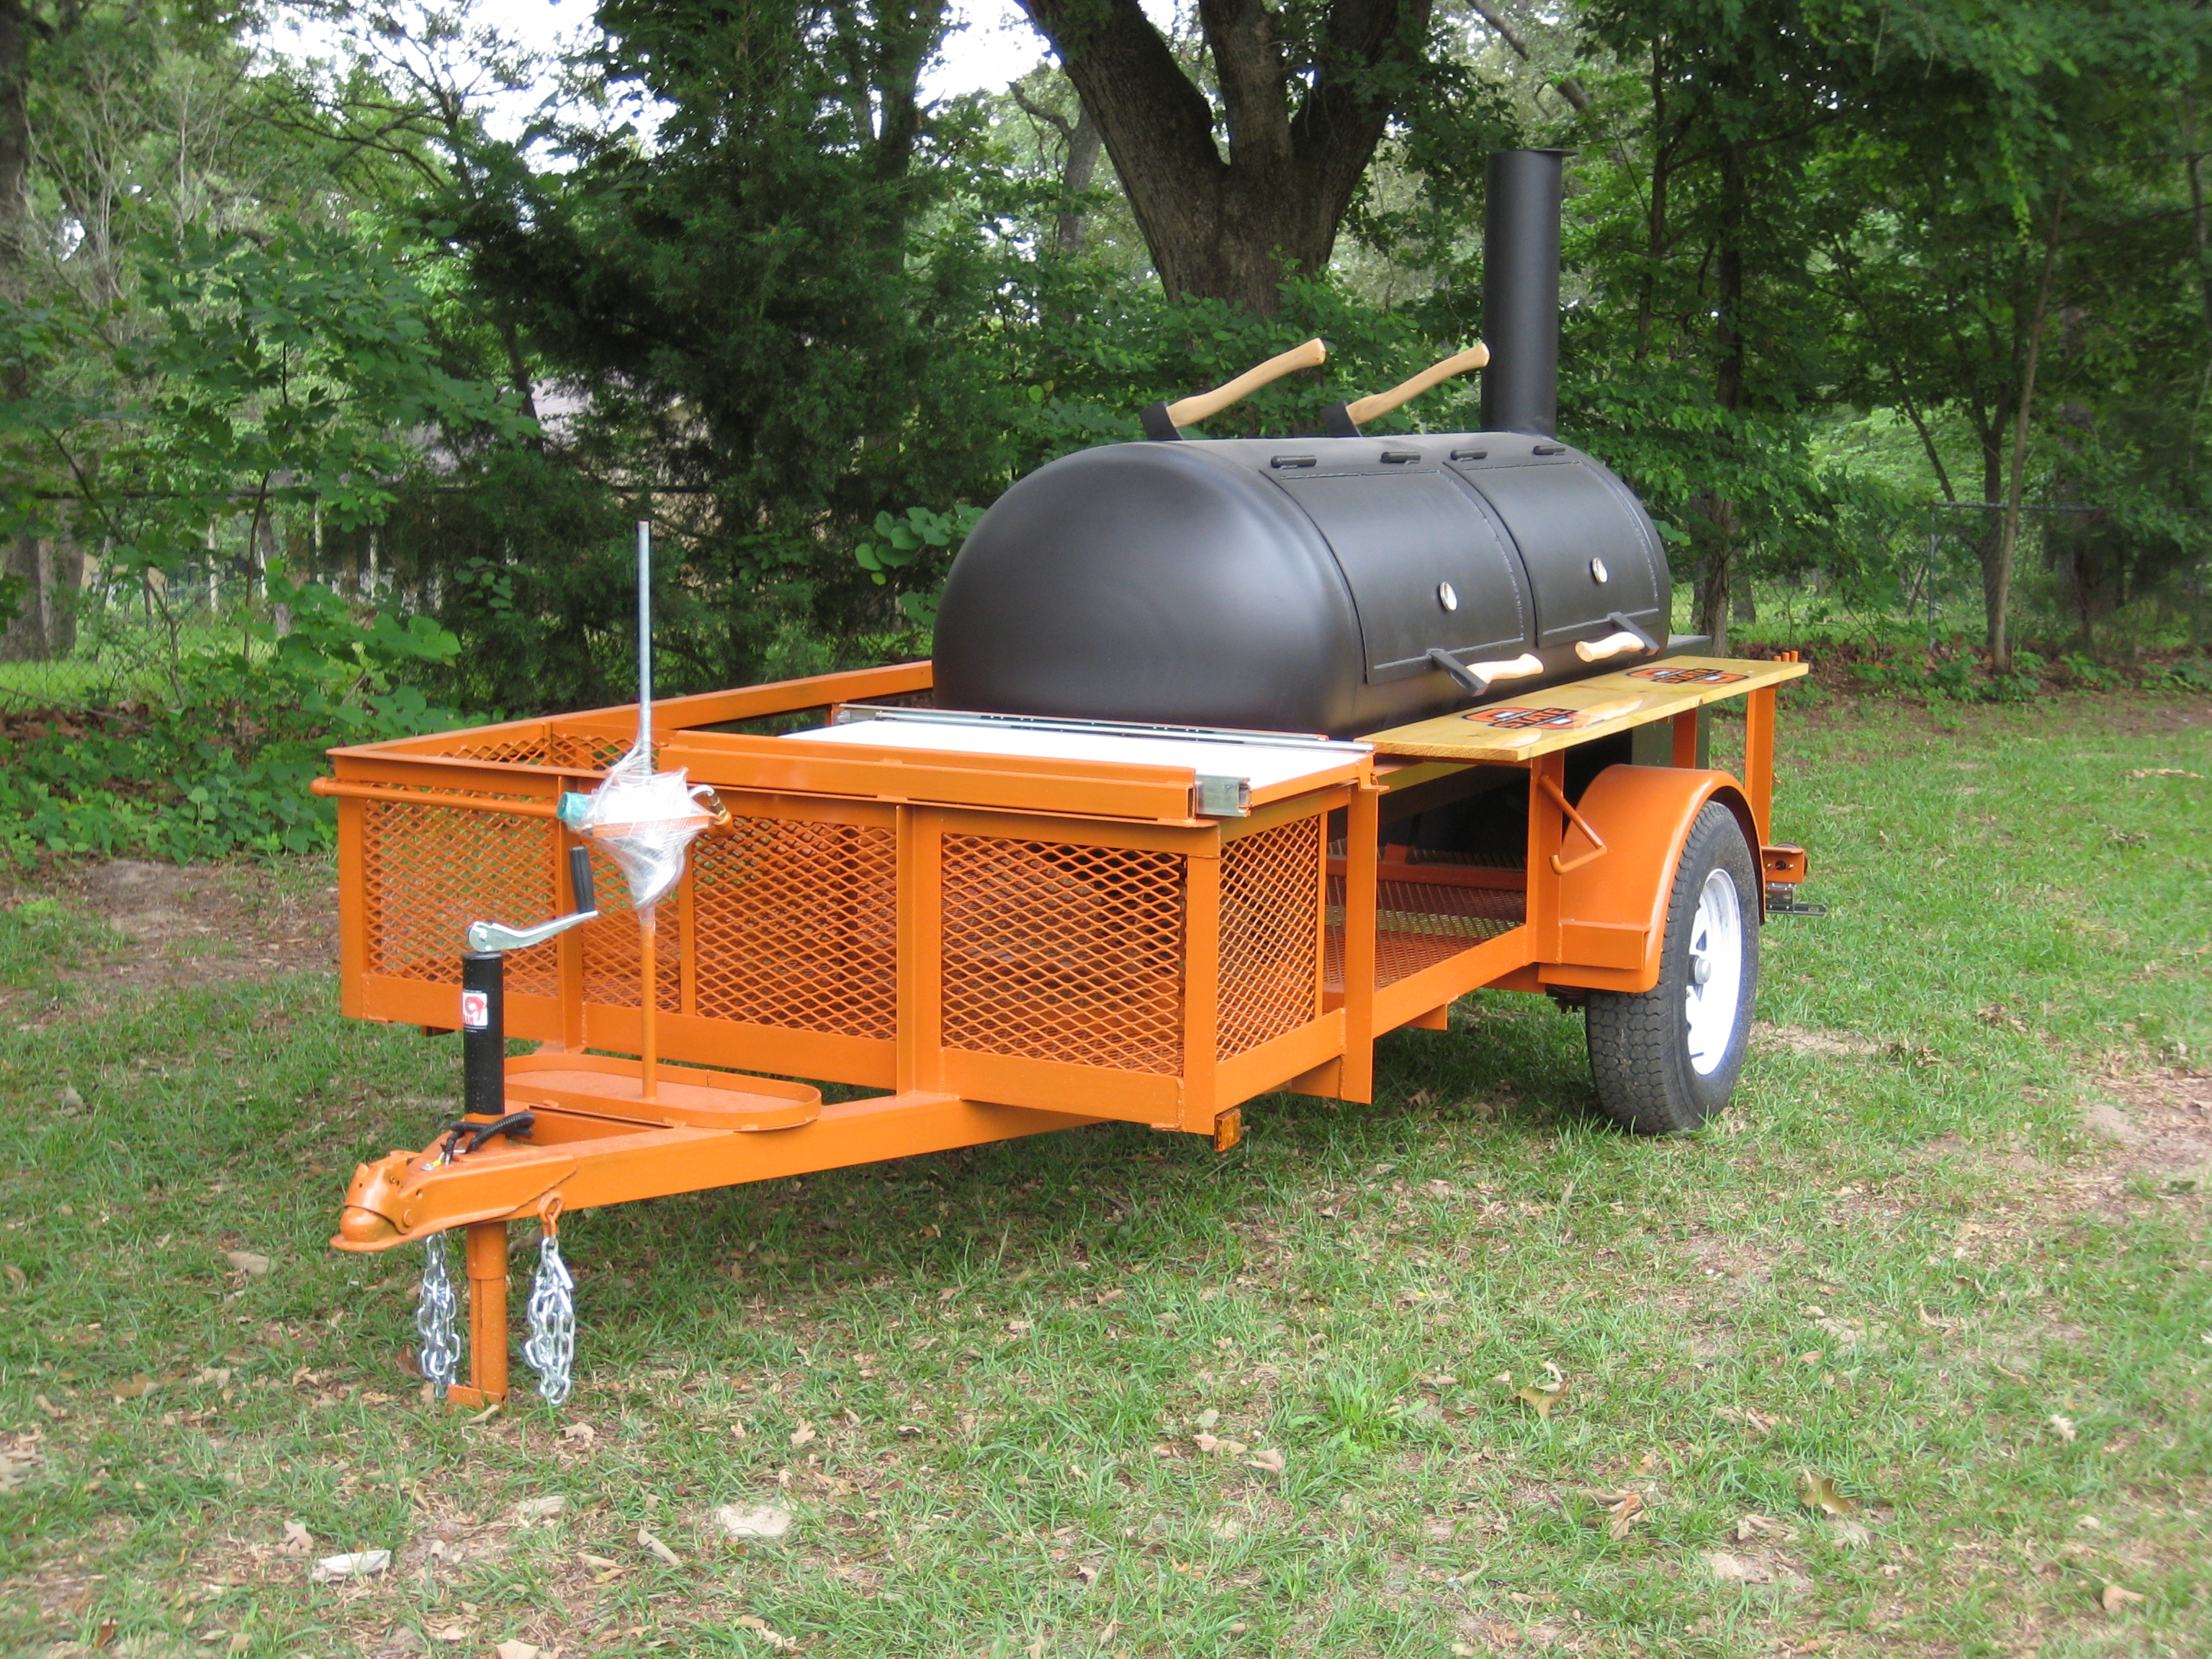 Cowboy Cooker Smoker Trailer